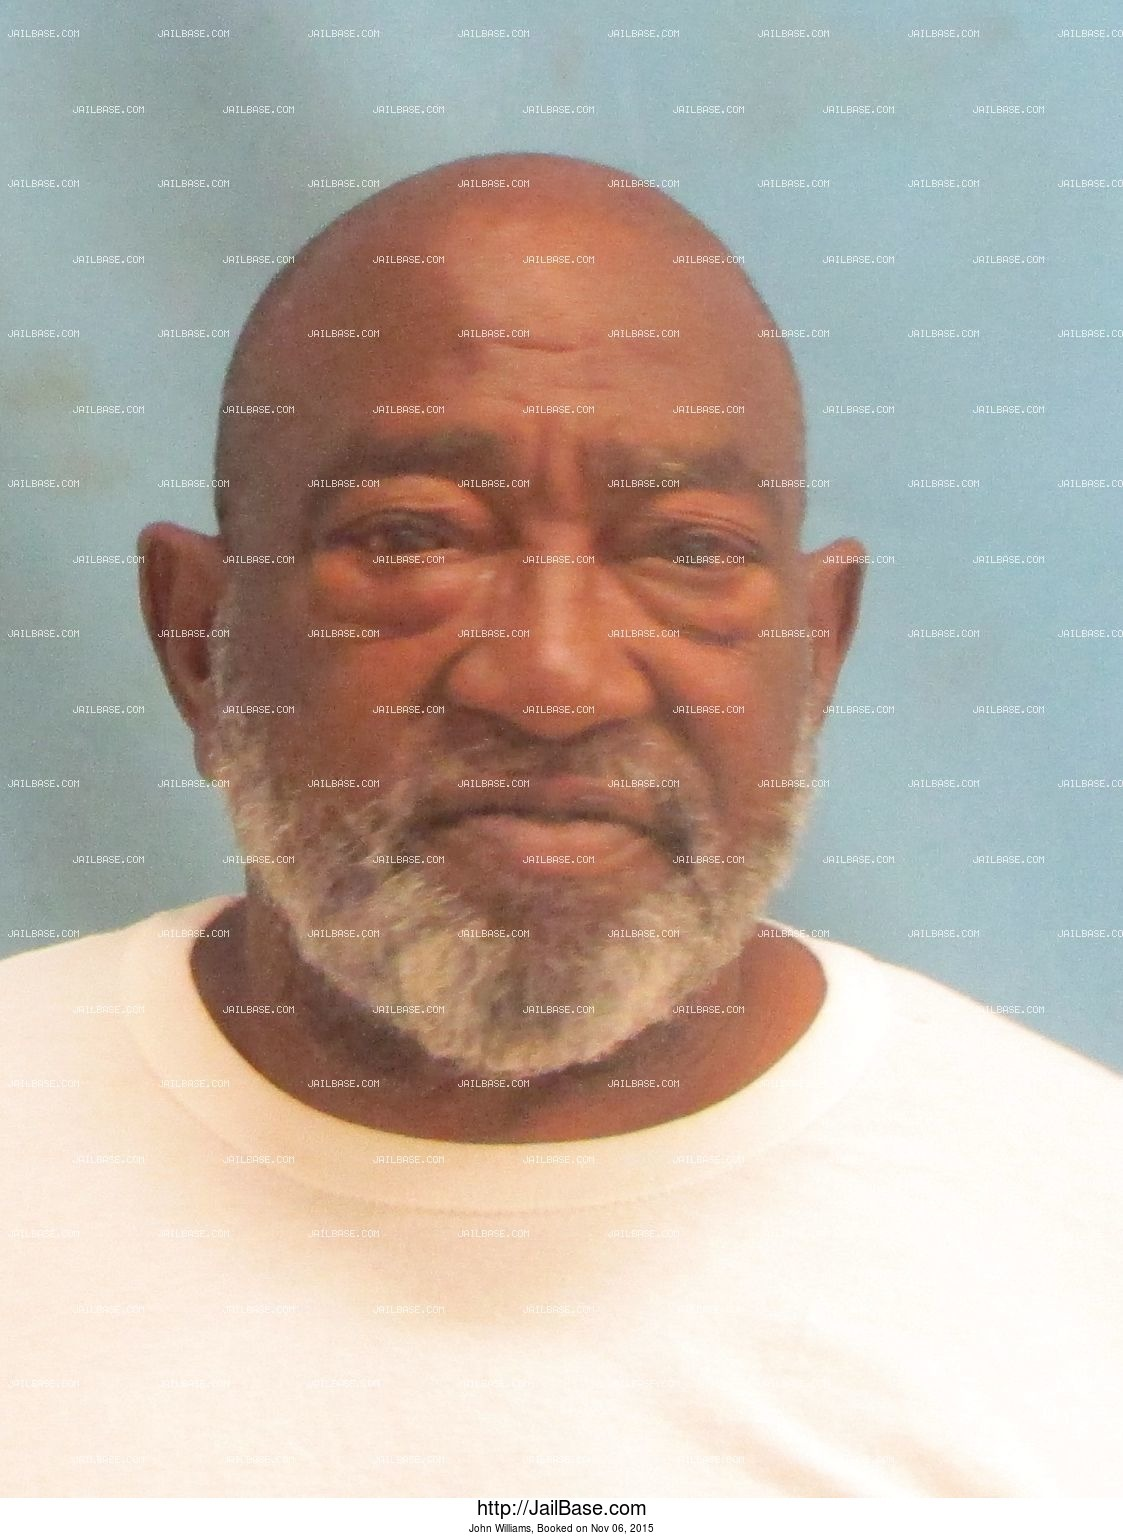 John Williams mugshot picture